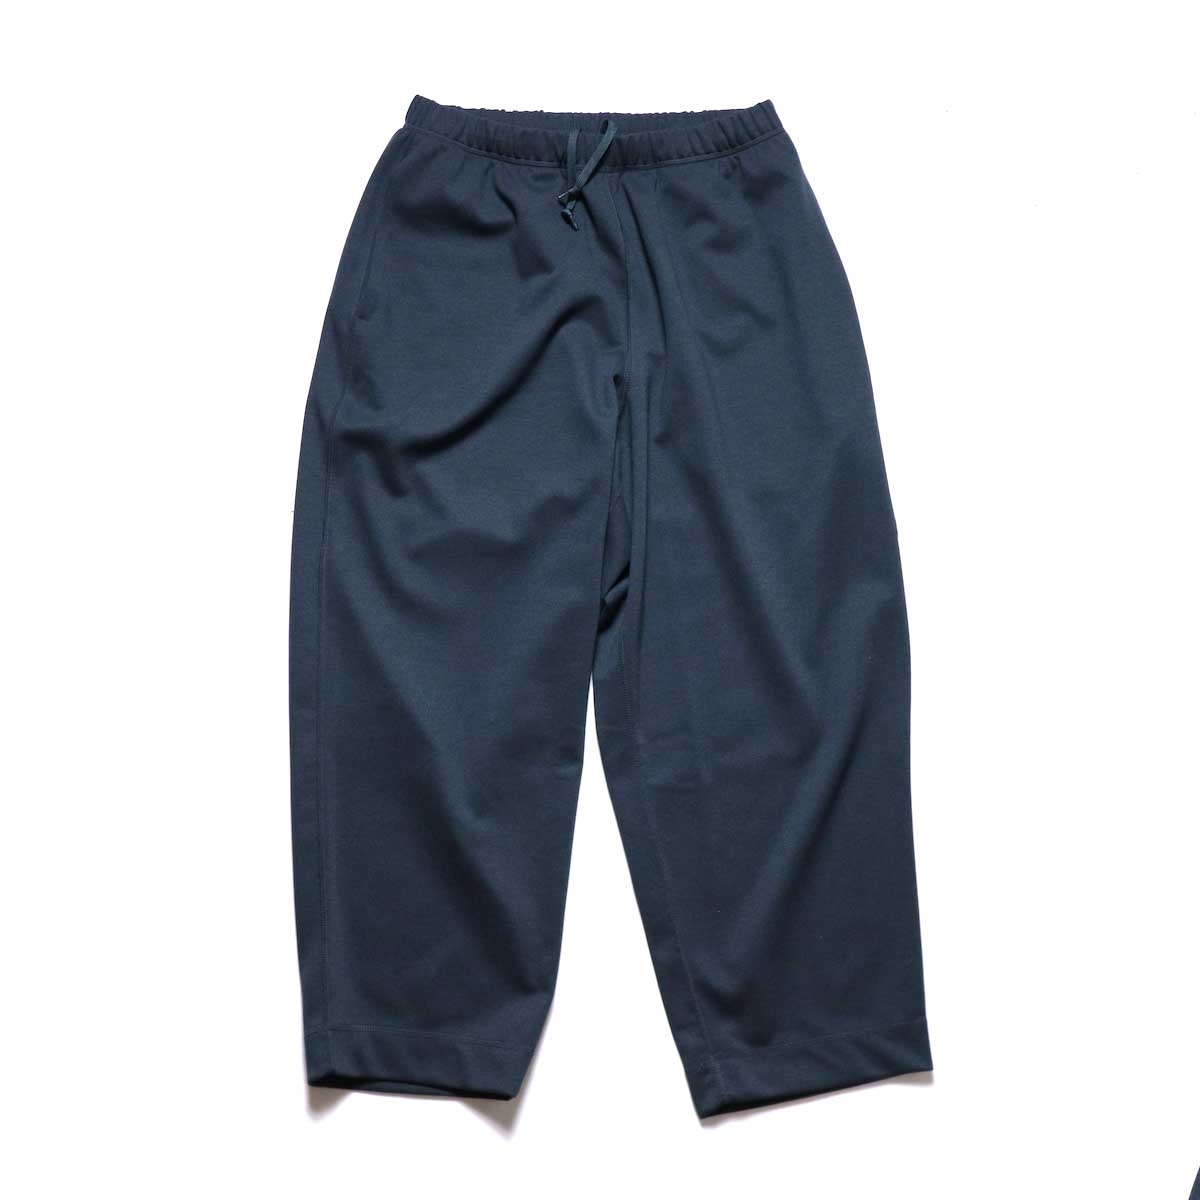 N.HOOLYWOOD / 24RCH-090 Easy Pants (Charcoal)